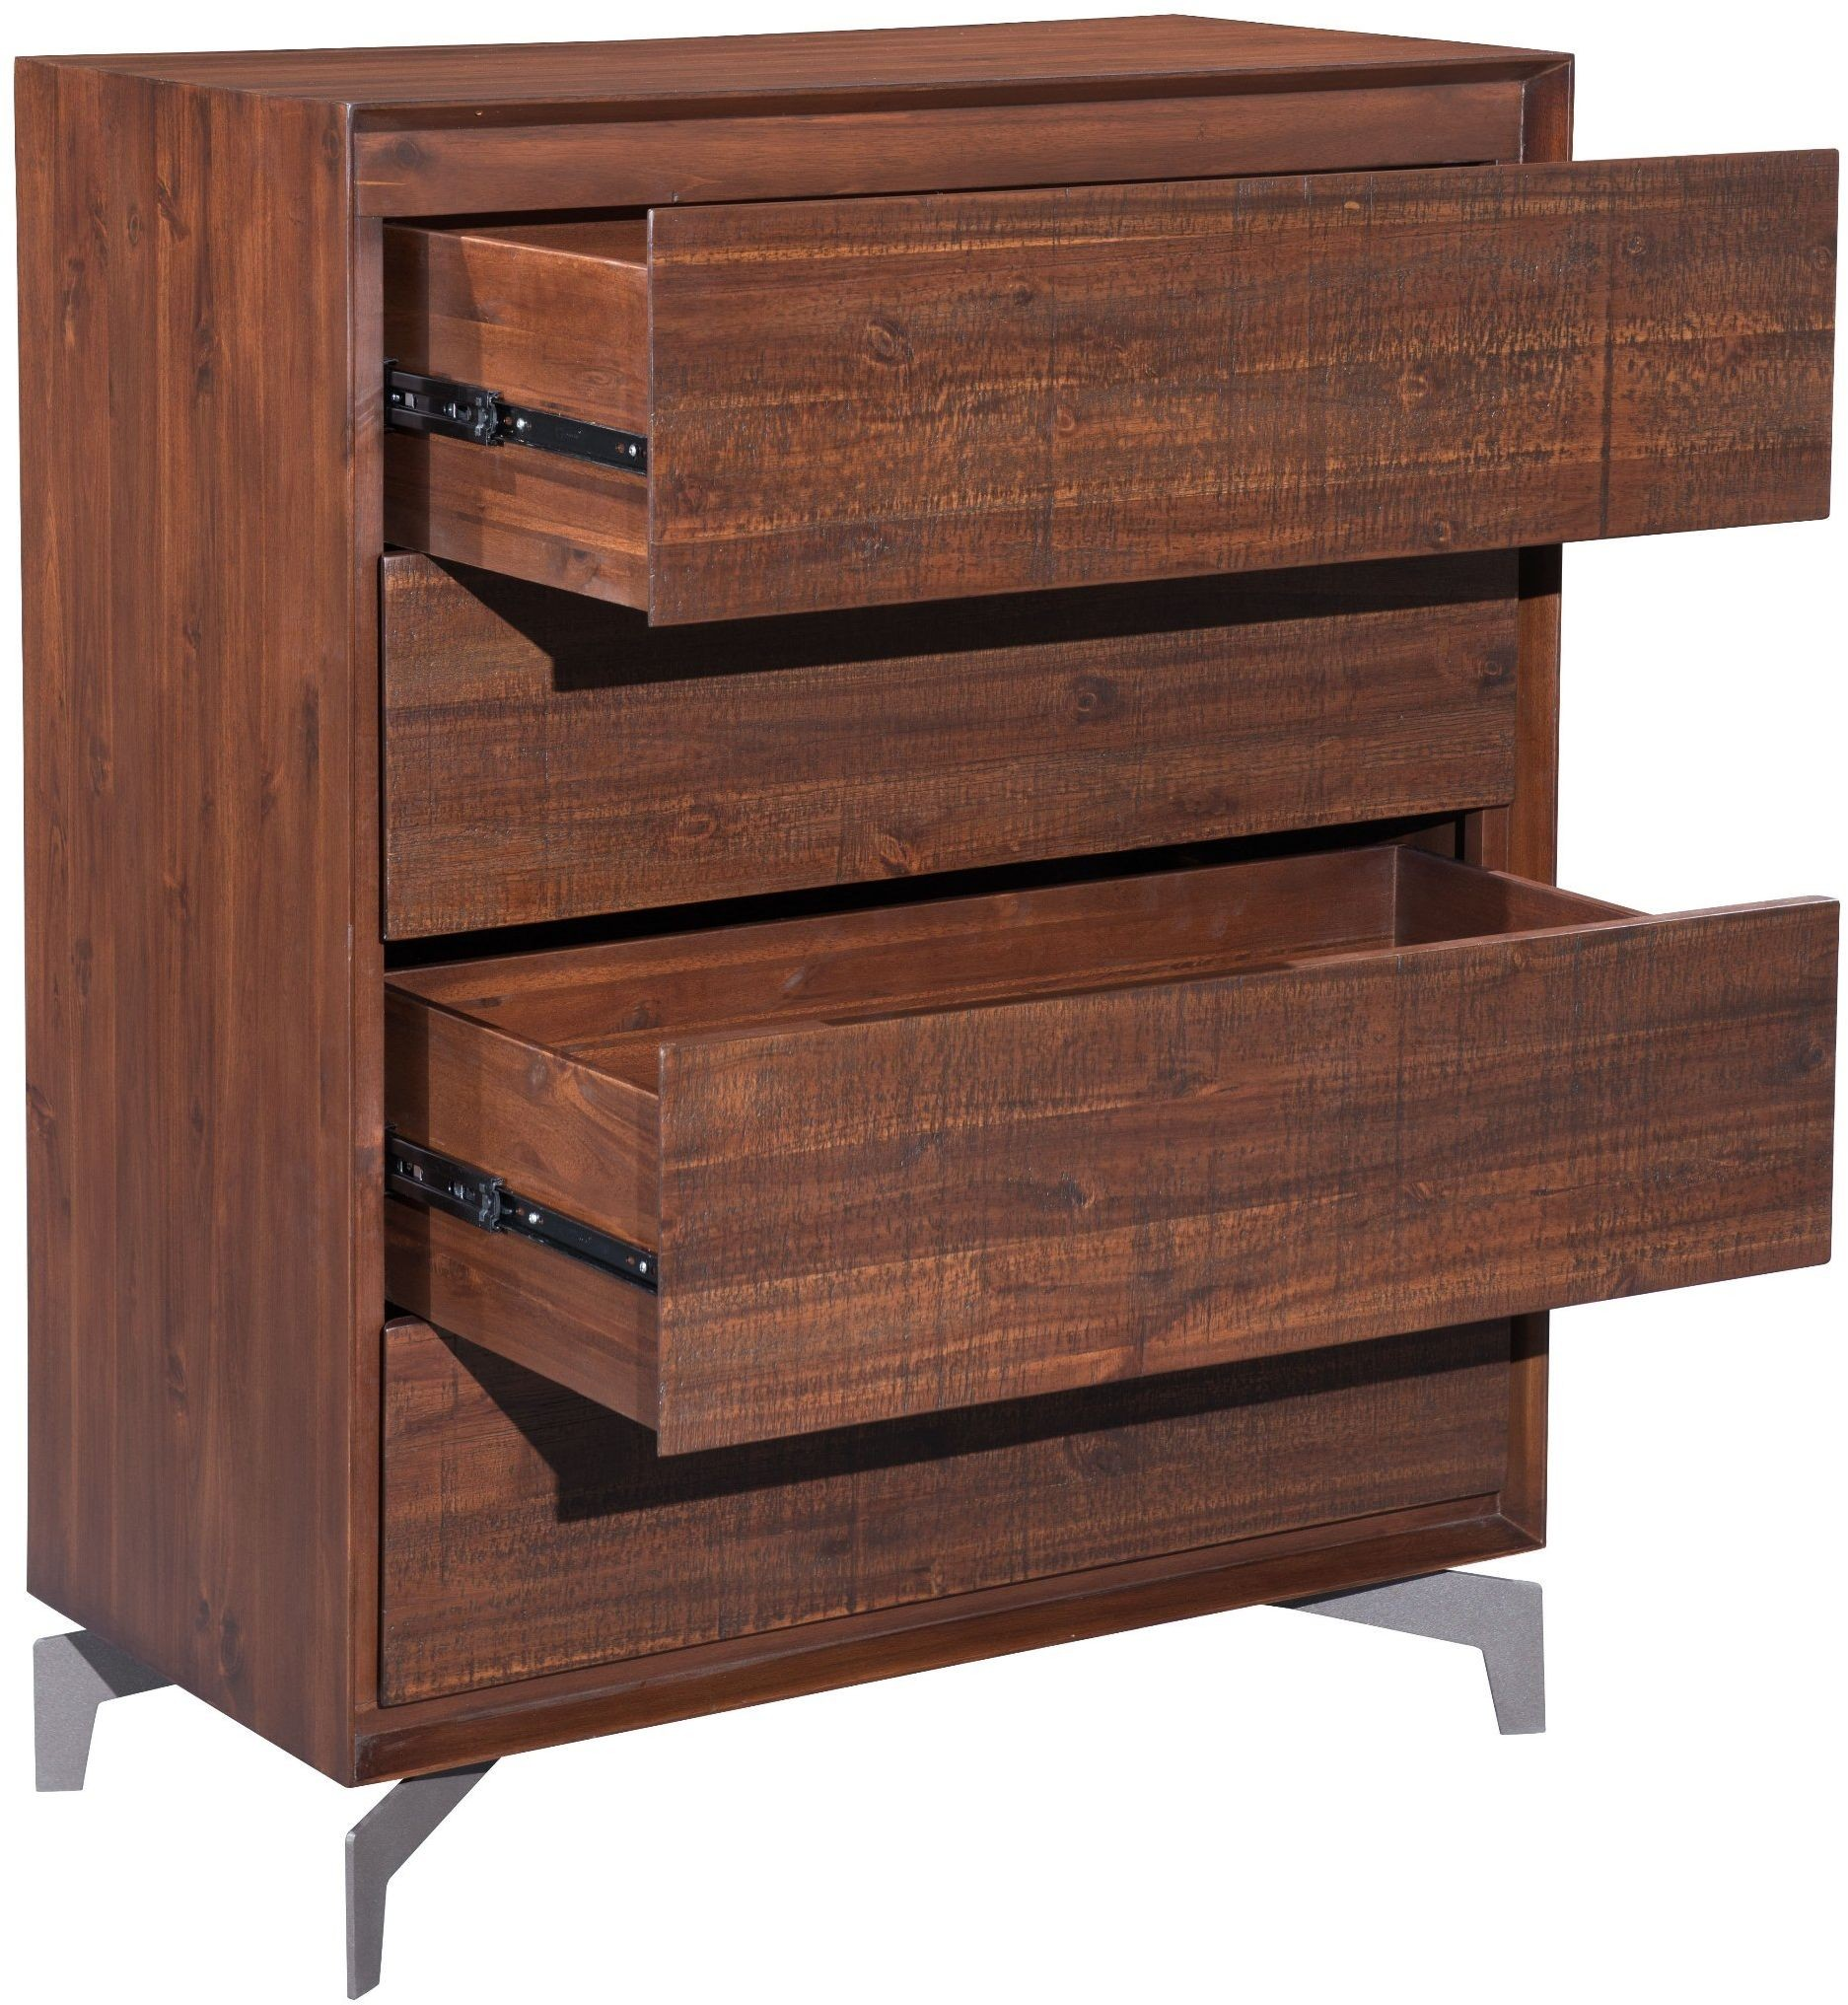 Perth chestnut platform bedroom set 100583 zuo modern for Bedroom furniture perth